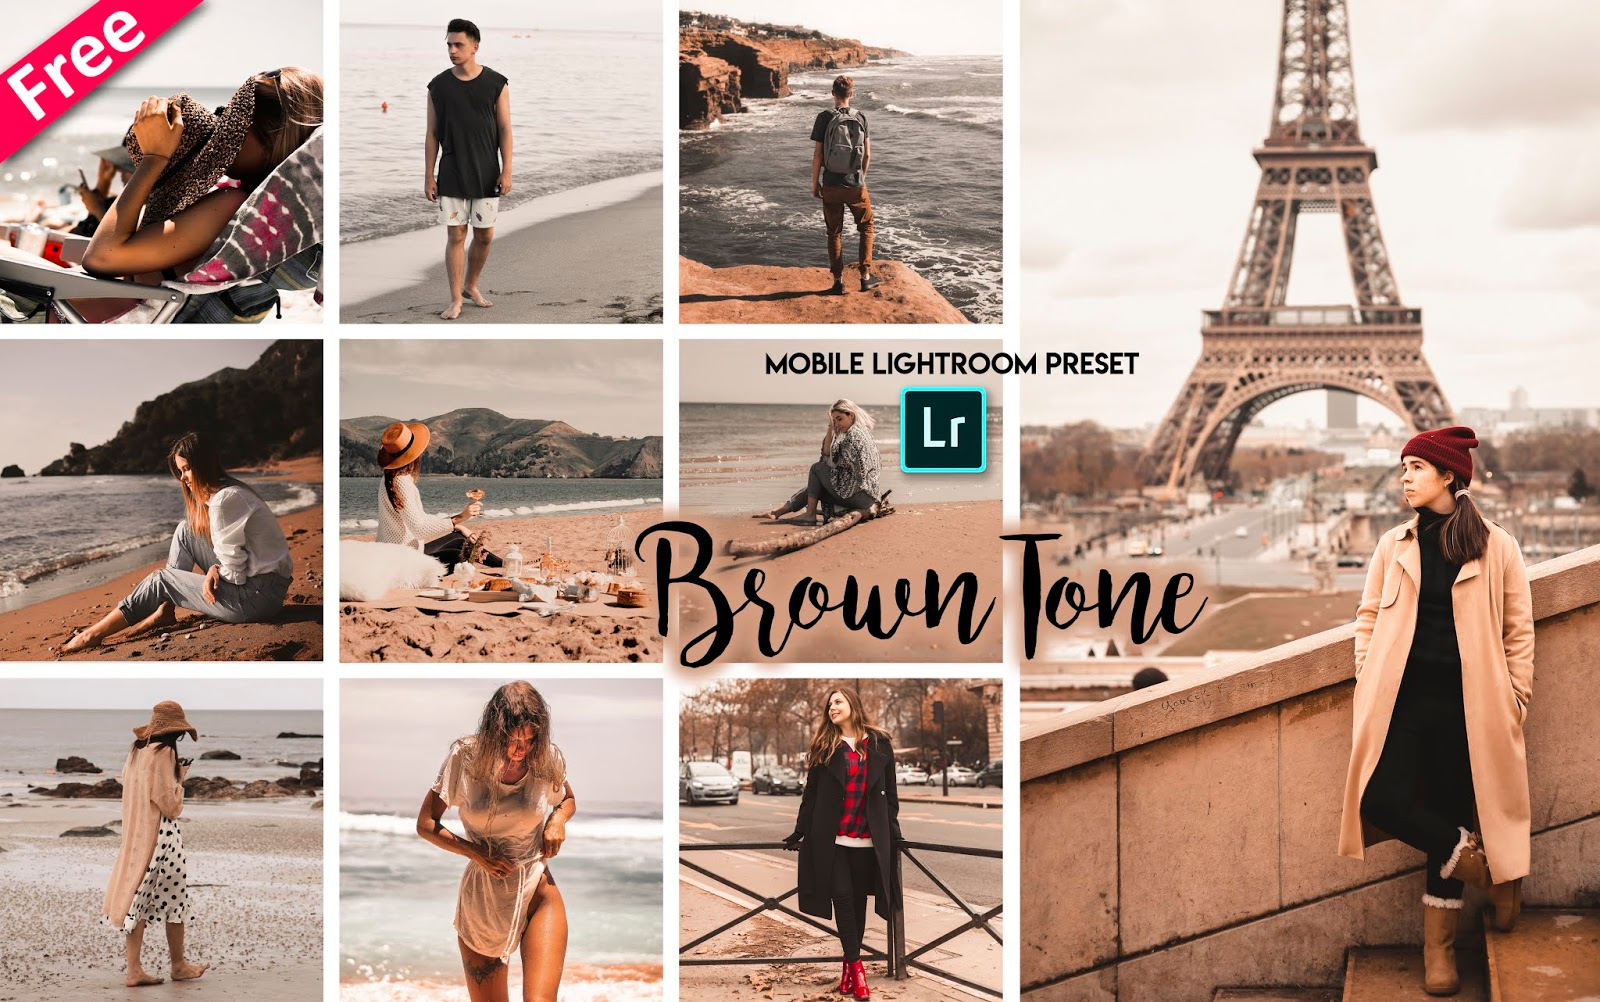 Brown Tone Mobile Lightroom Presets dng for Free | How to Make Brown Tone Effect to Photos in Mobile Lightroom